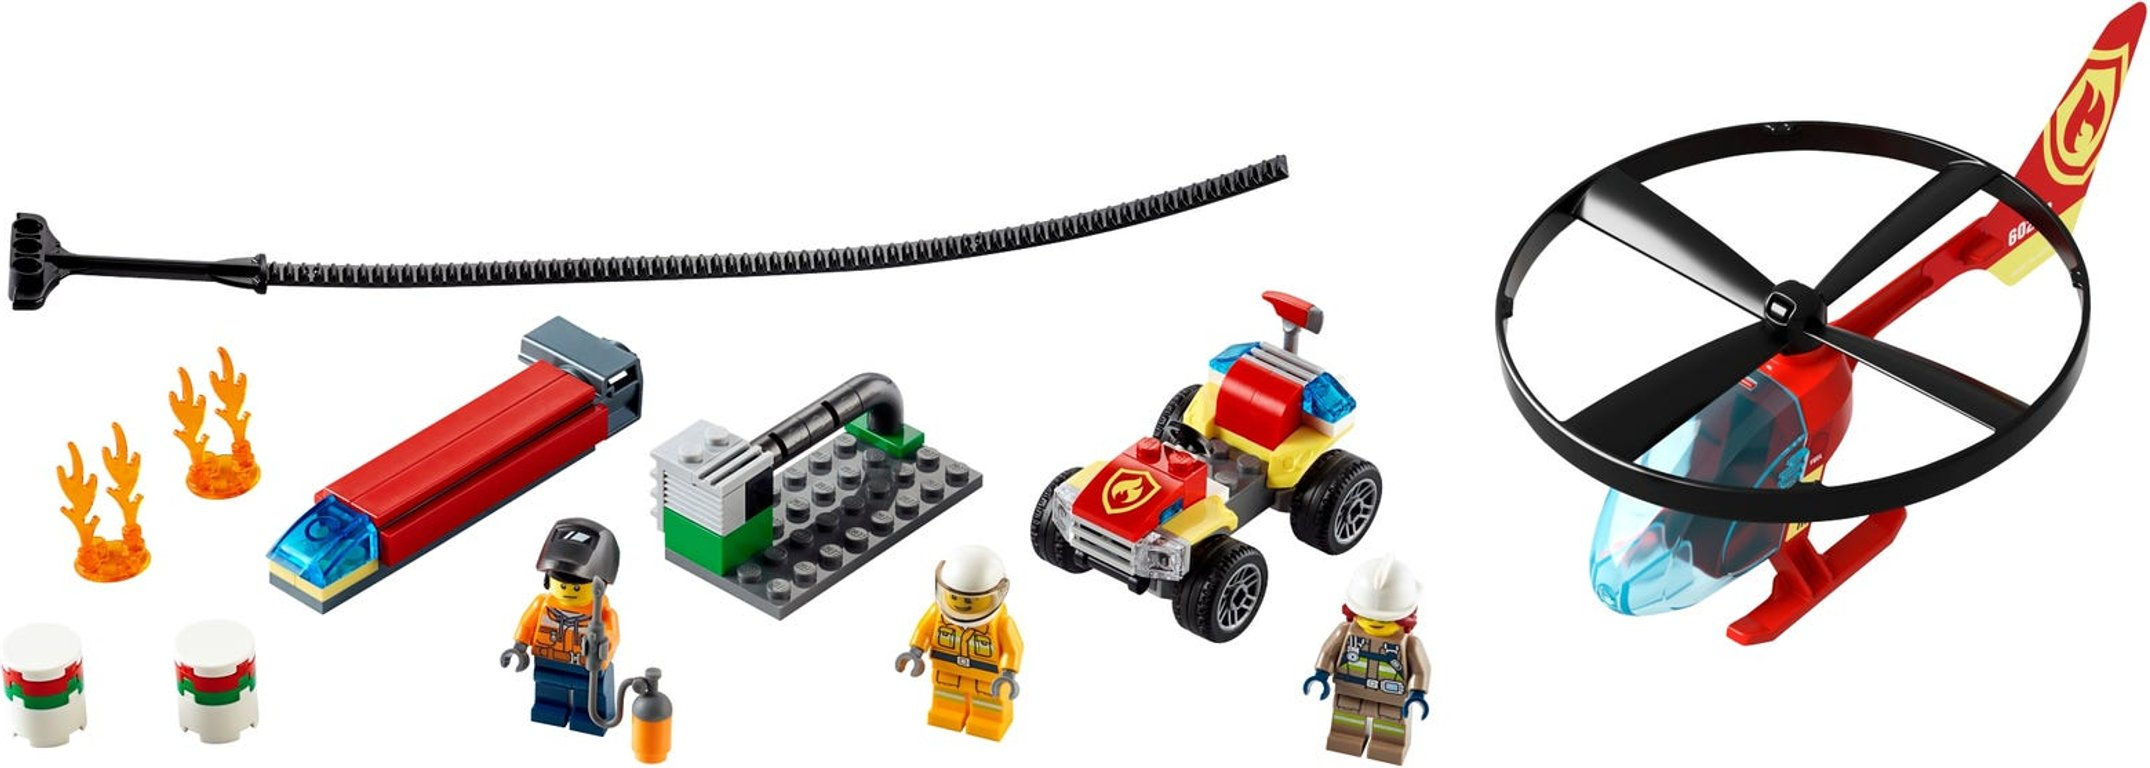 LEGO® City Fire Helicopter Response components